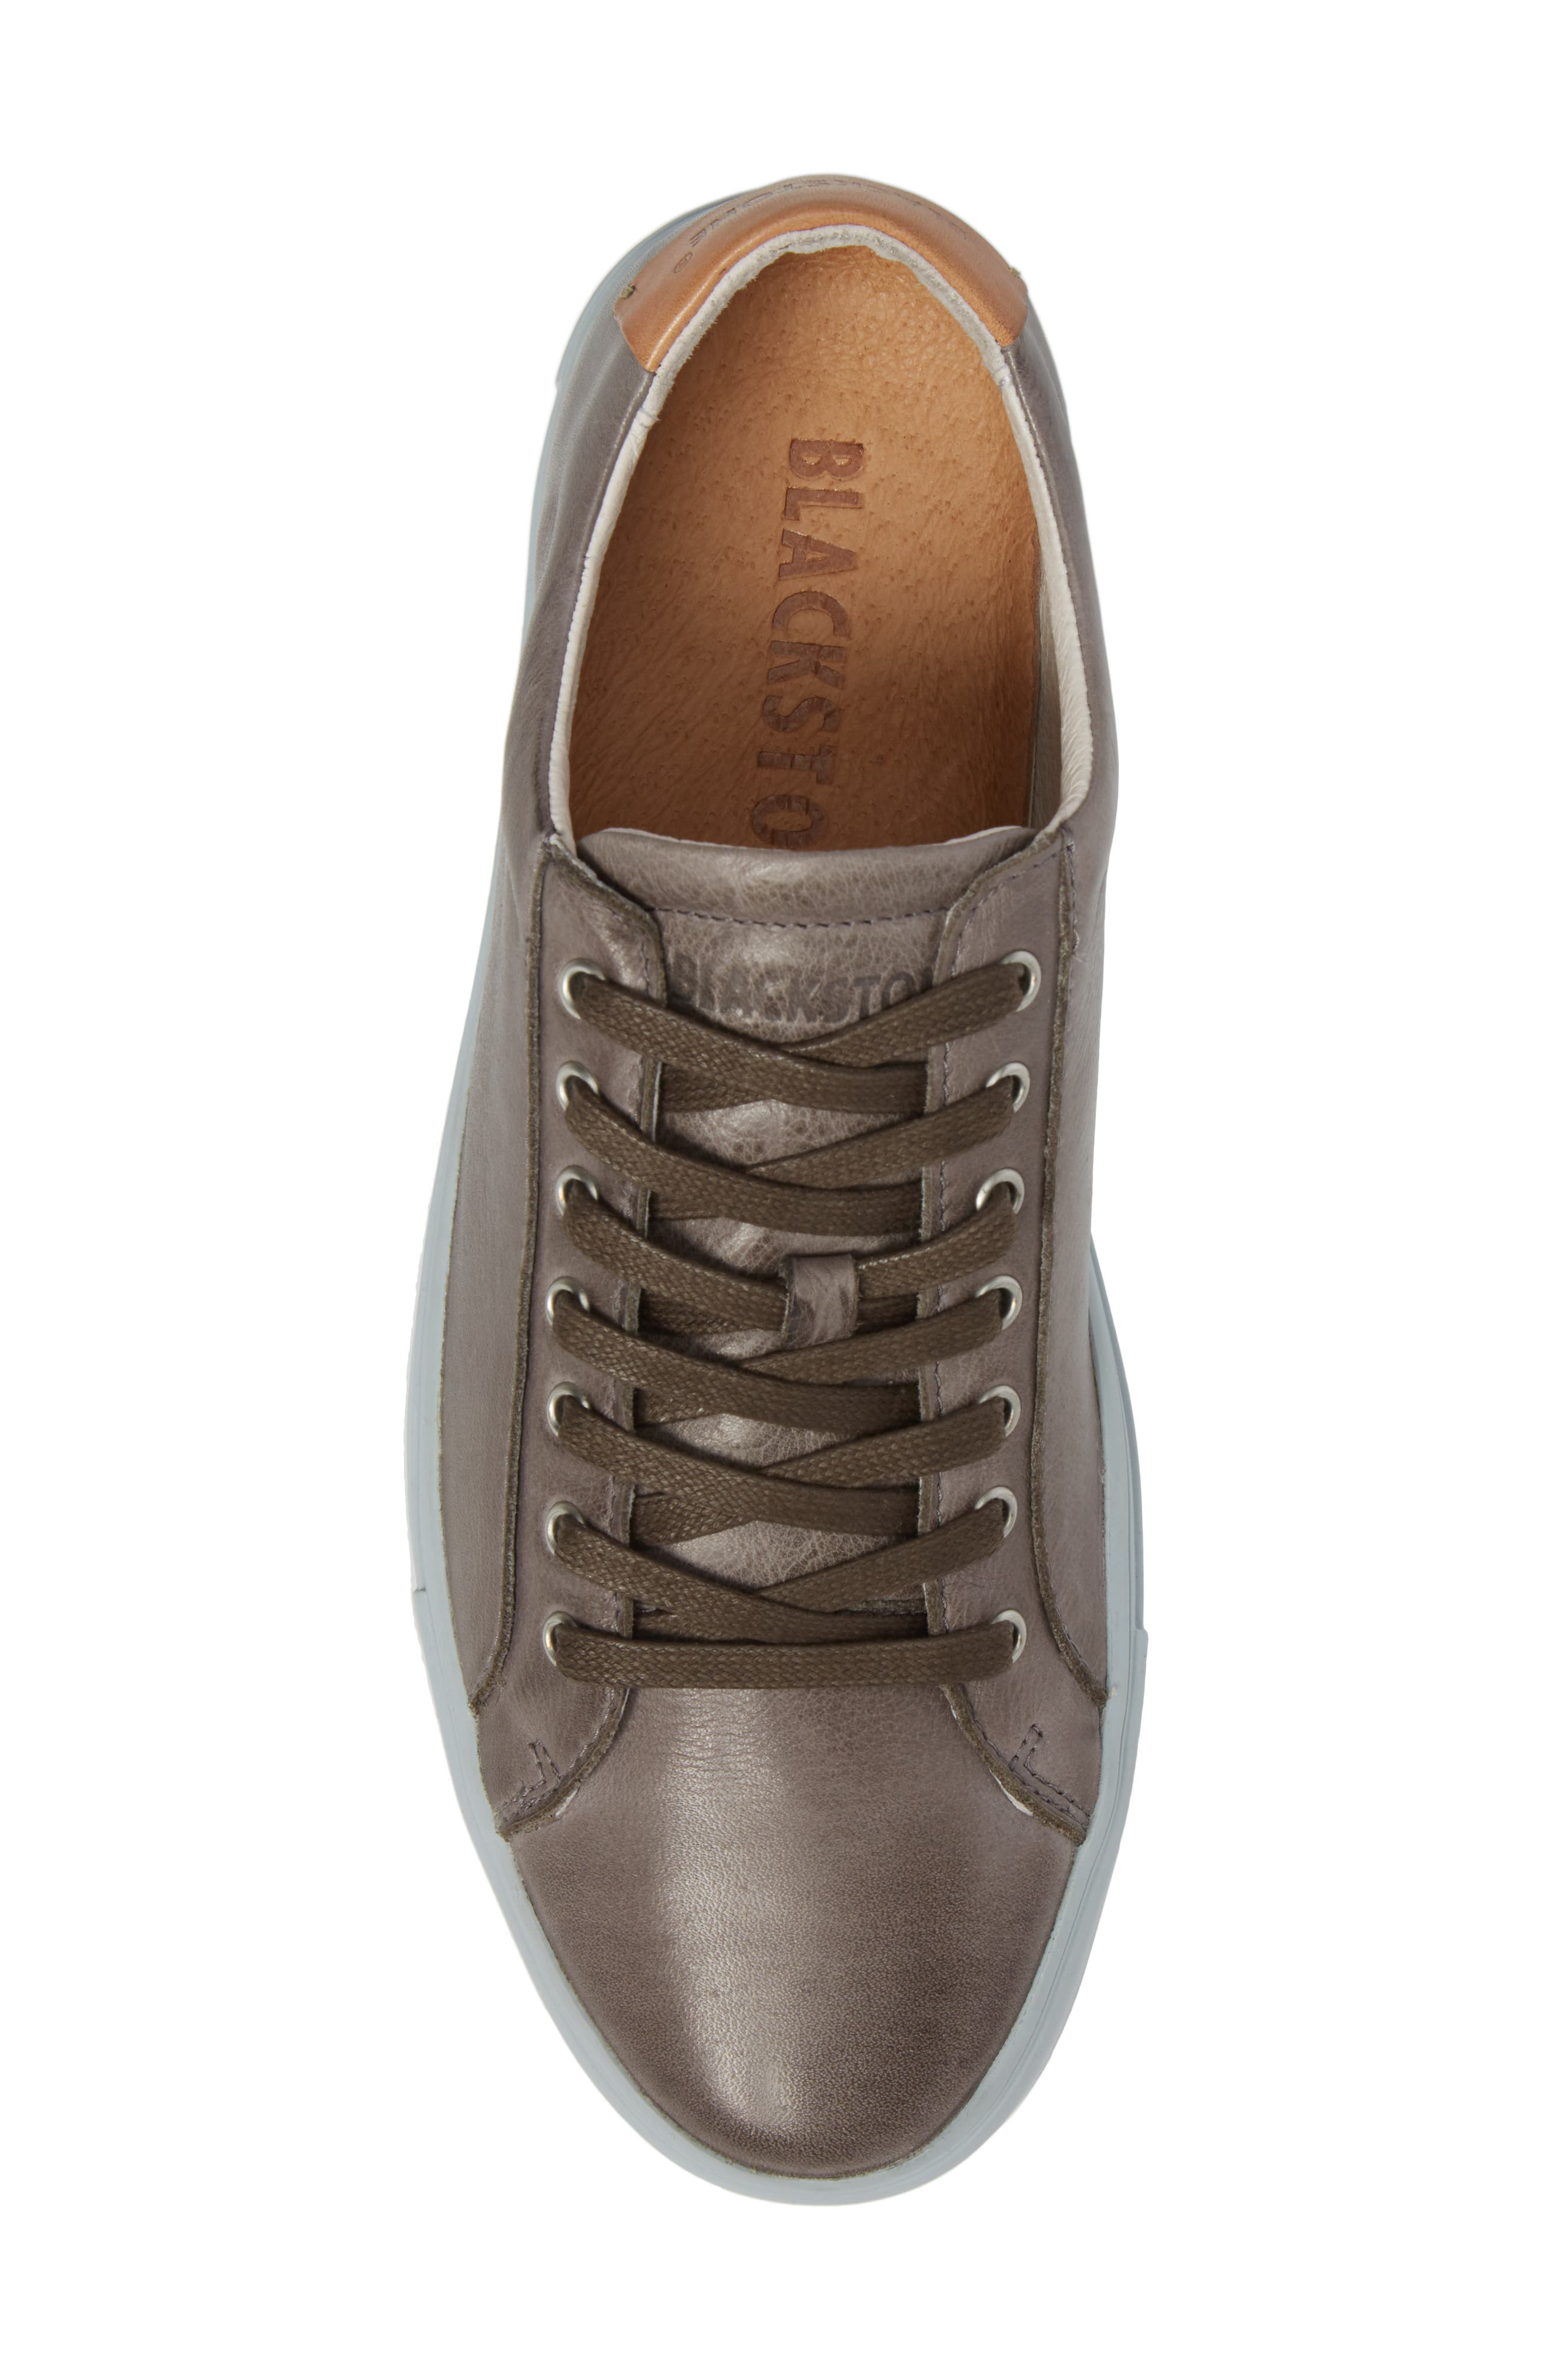 NM01 7 Eyelet Sneaker,                             Alternate thumbnail 5, color,                             Charcoal Leather